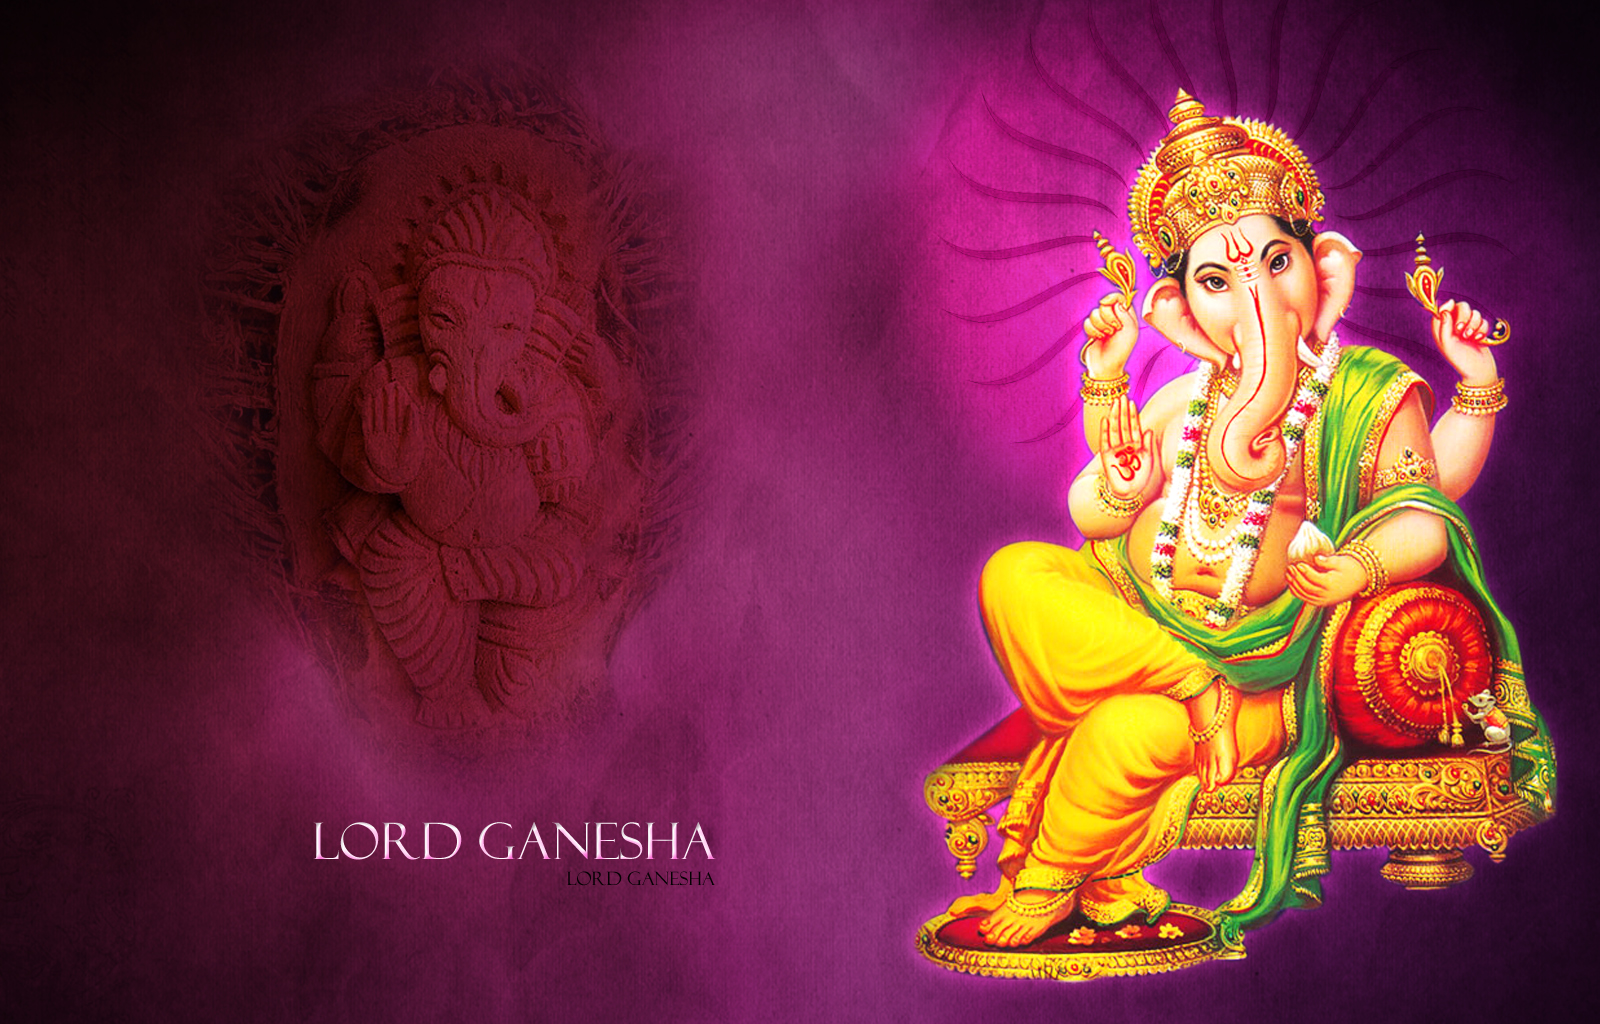 Wallpaper Images Of Lord Ganesha